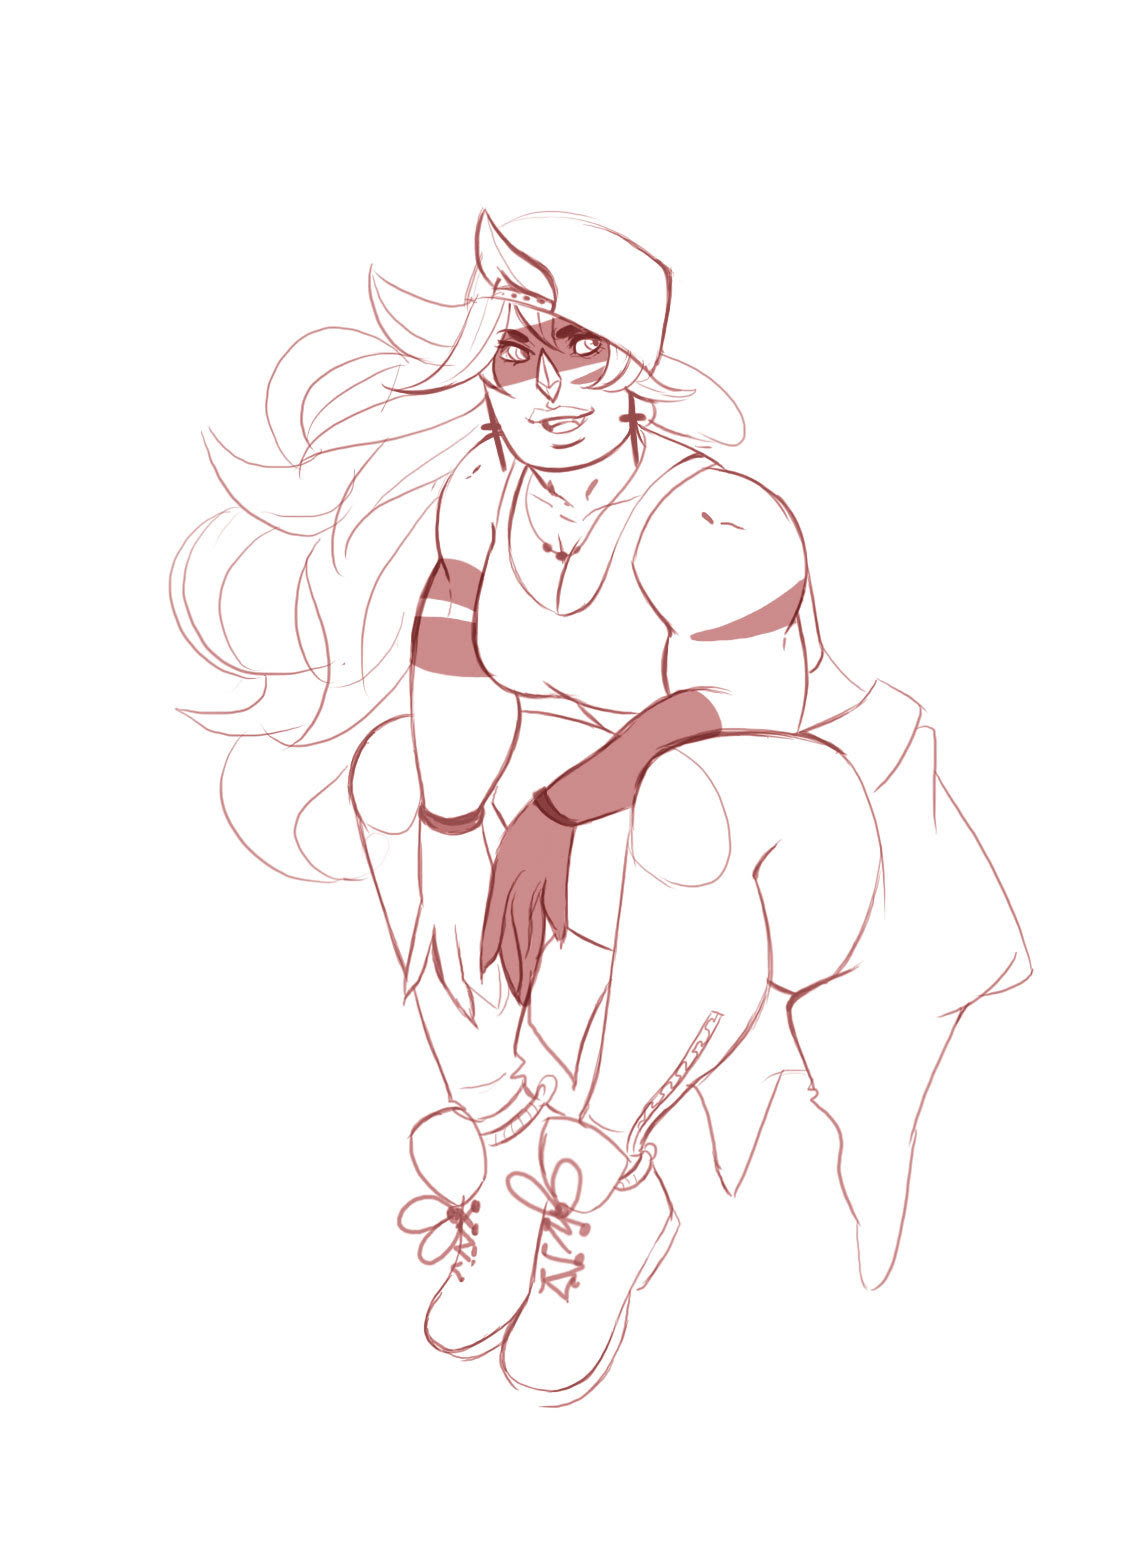 I doodled Jasper in clothing im wearing today. Might color it when I get home.